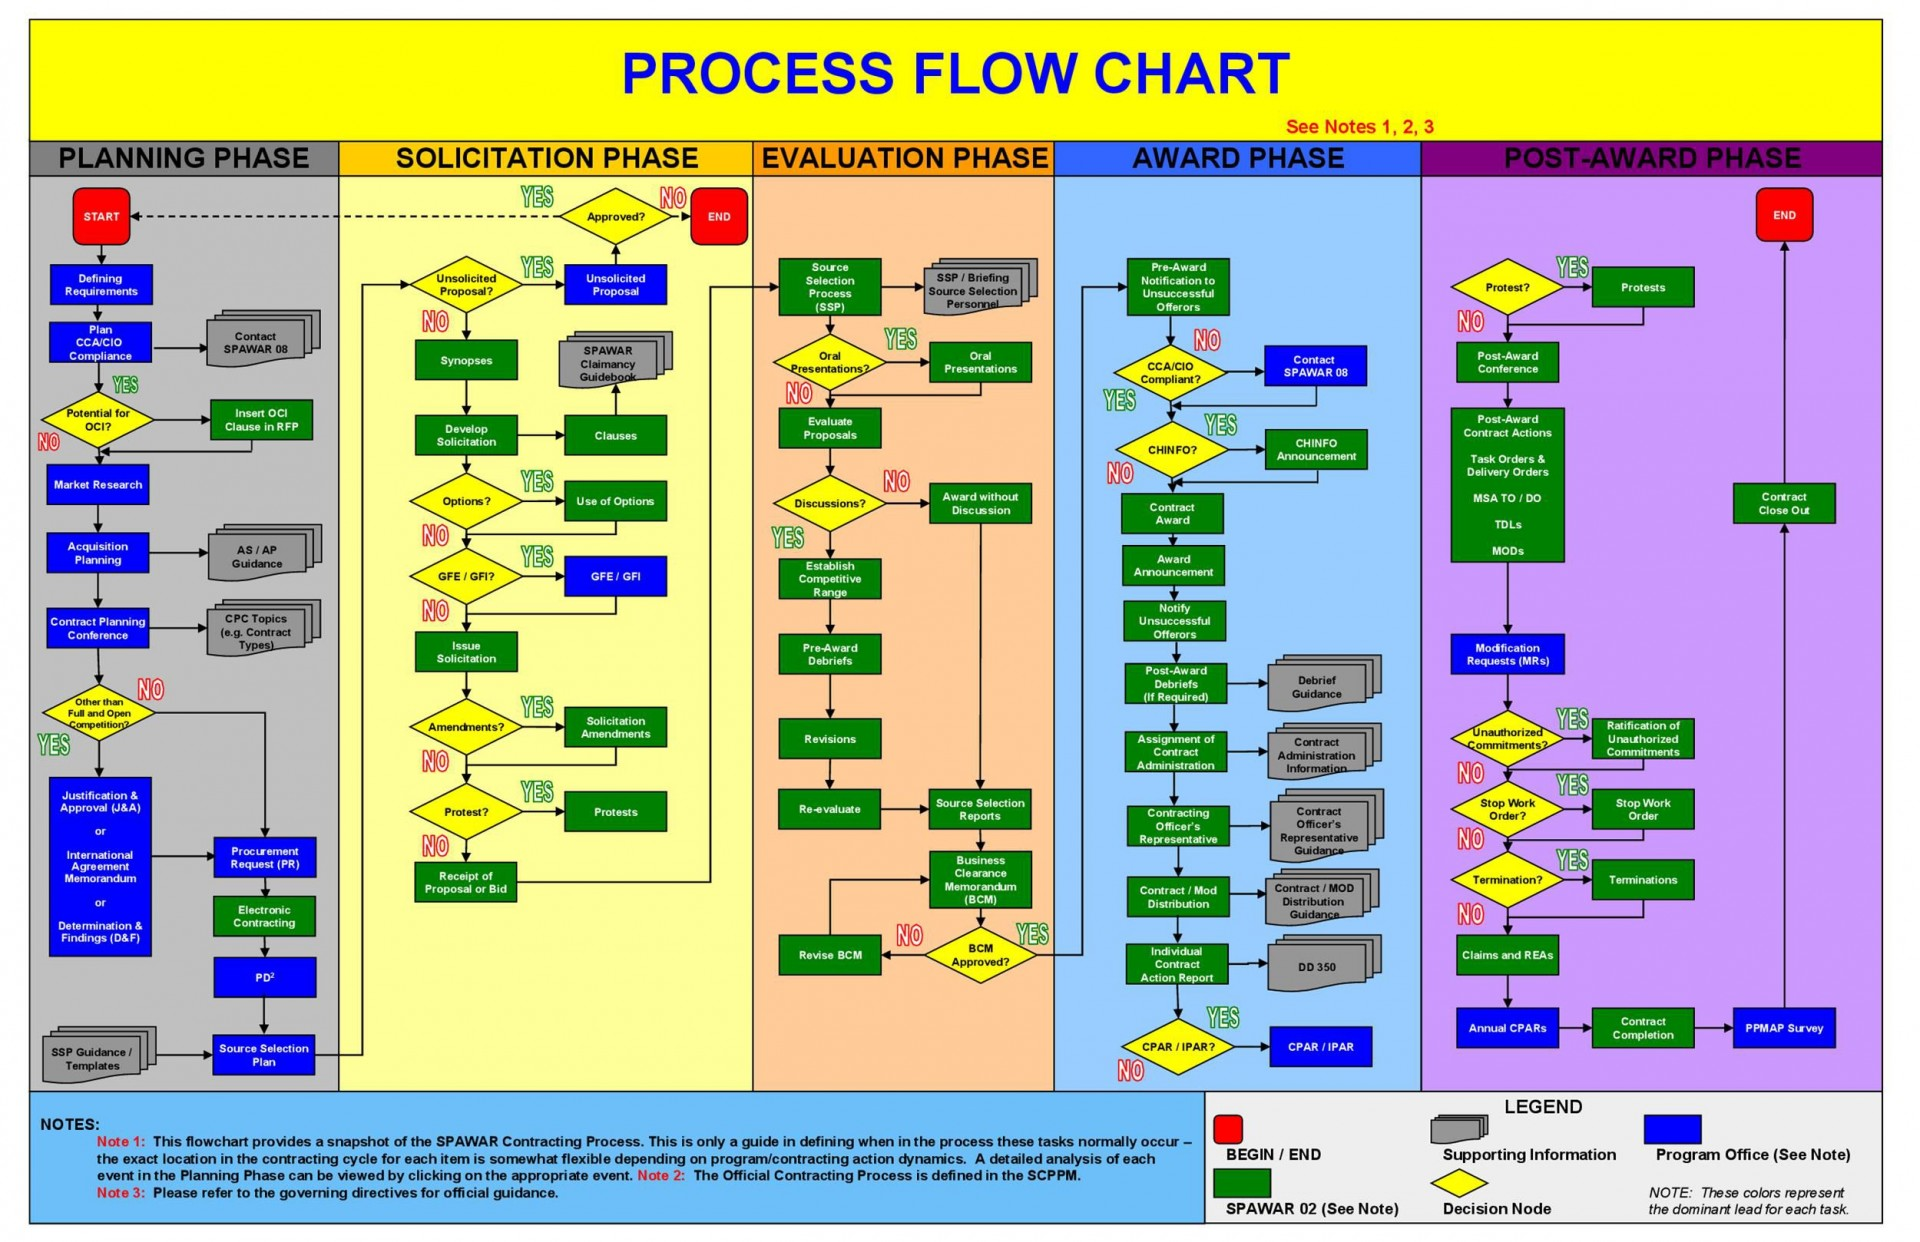 004 Awful Excel Flow Chart Template Inspiration  Templates Basic Flowchart Microsoft Free 20101920